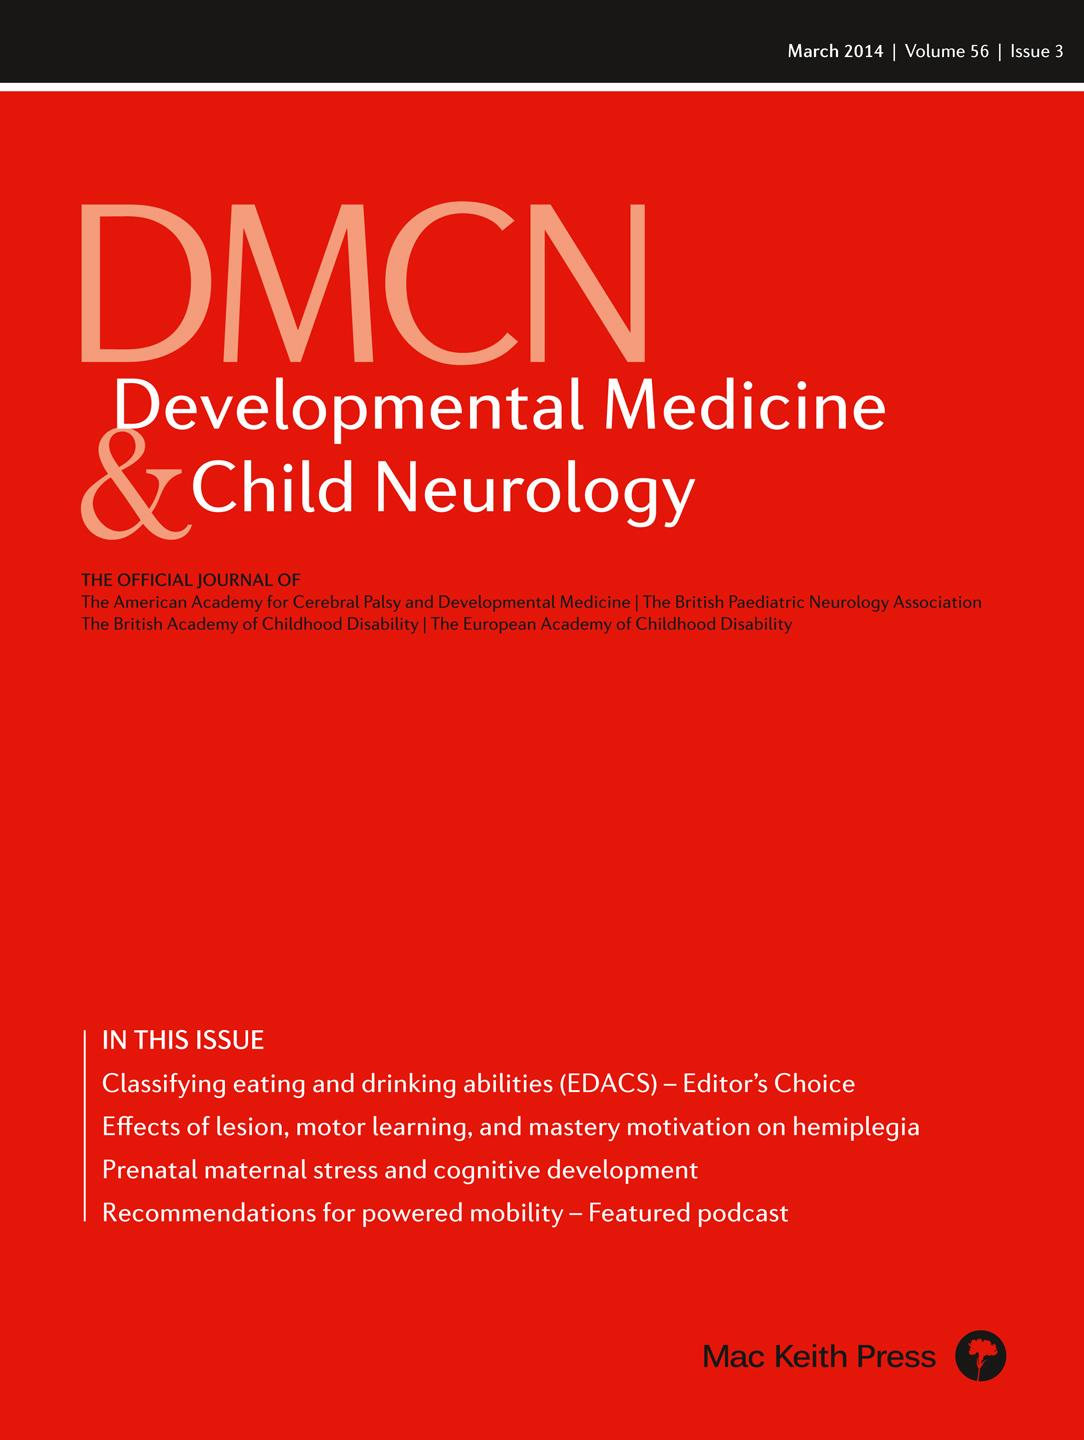 DMCN Discussion: 'Practice considerations for the introduction and use of power mobility for children'